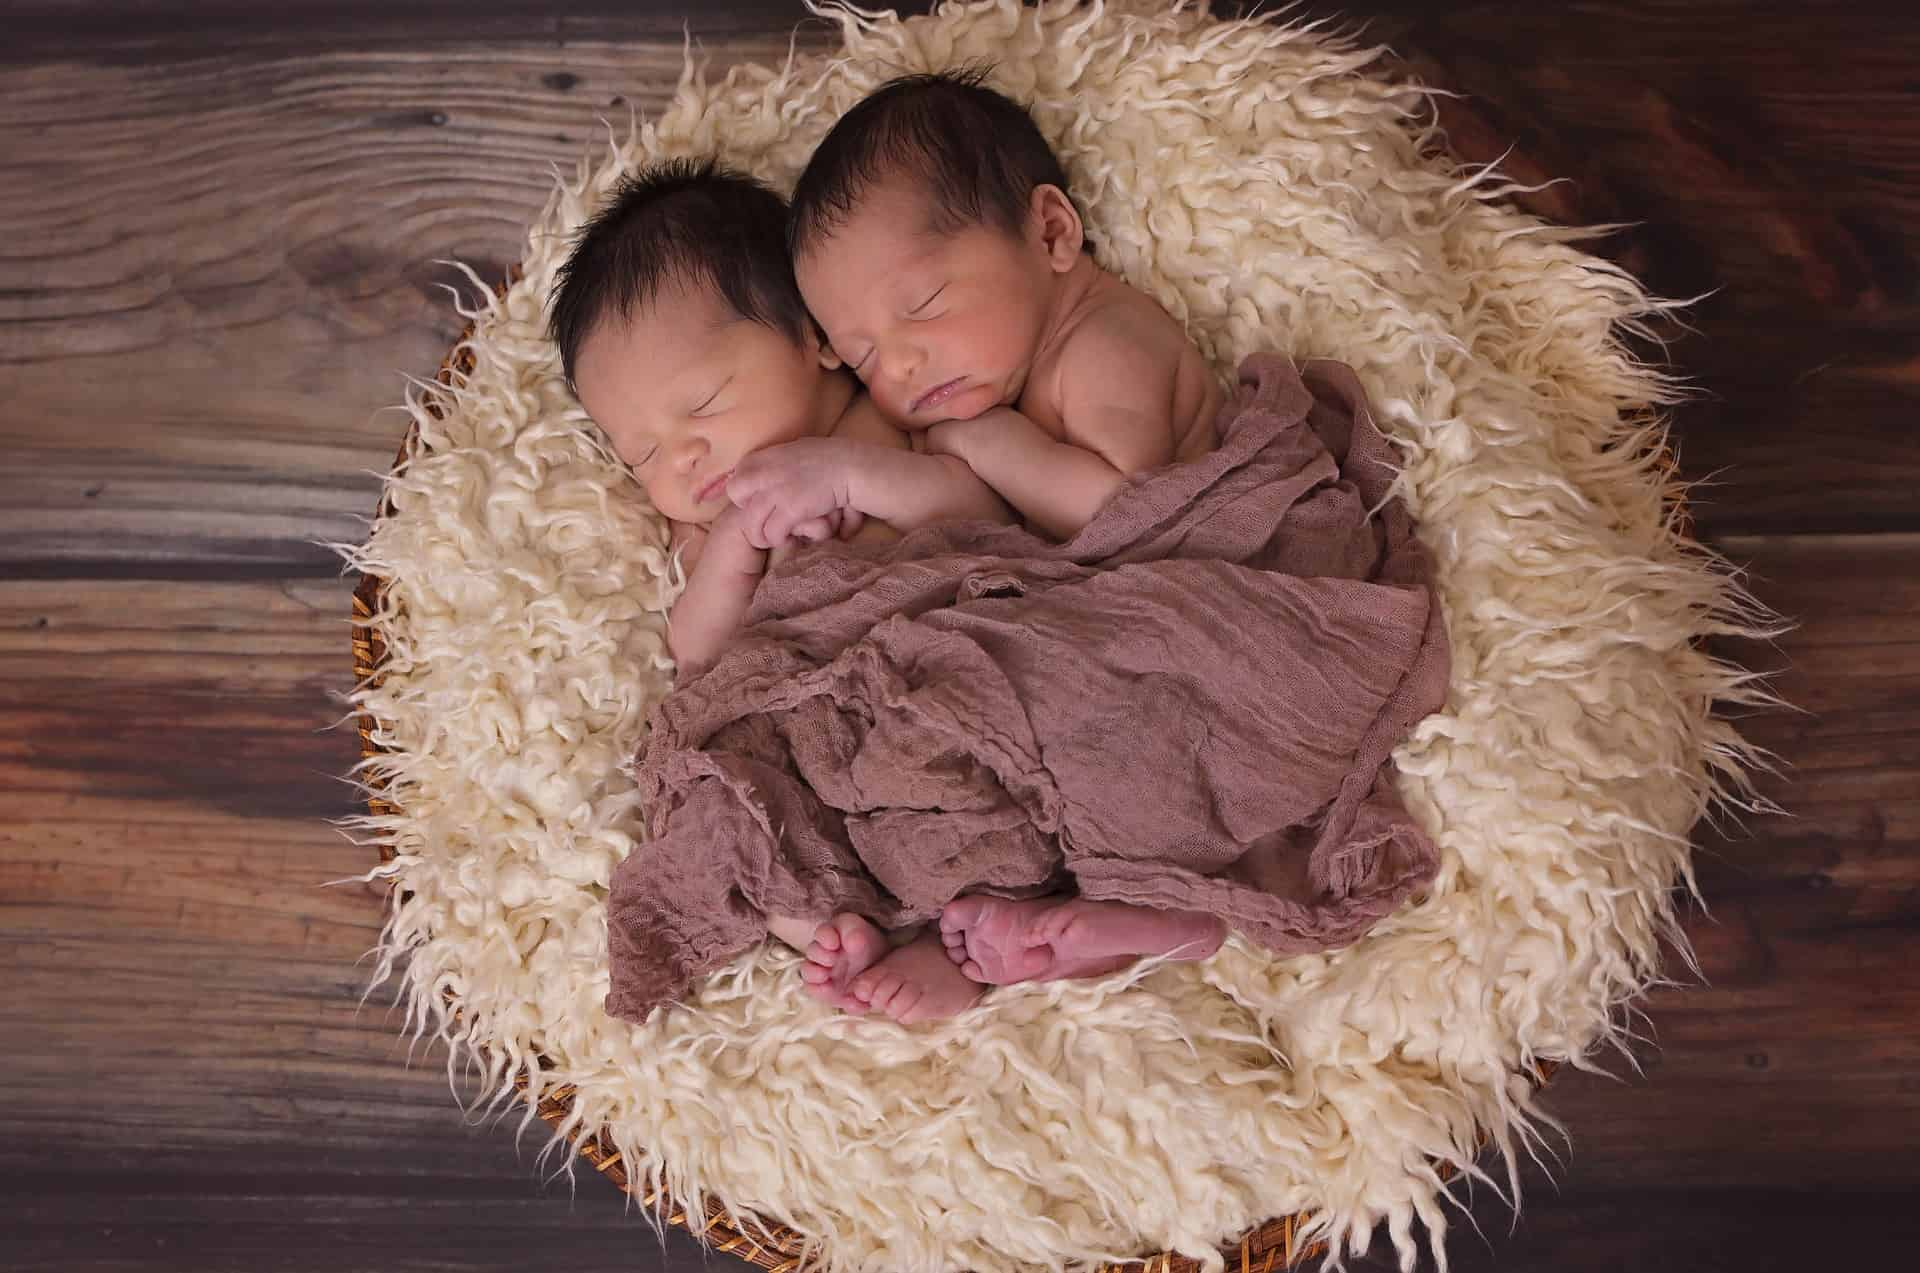 Woman Gives Birth To Twins — 11 Weeks Apart